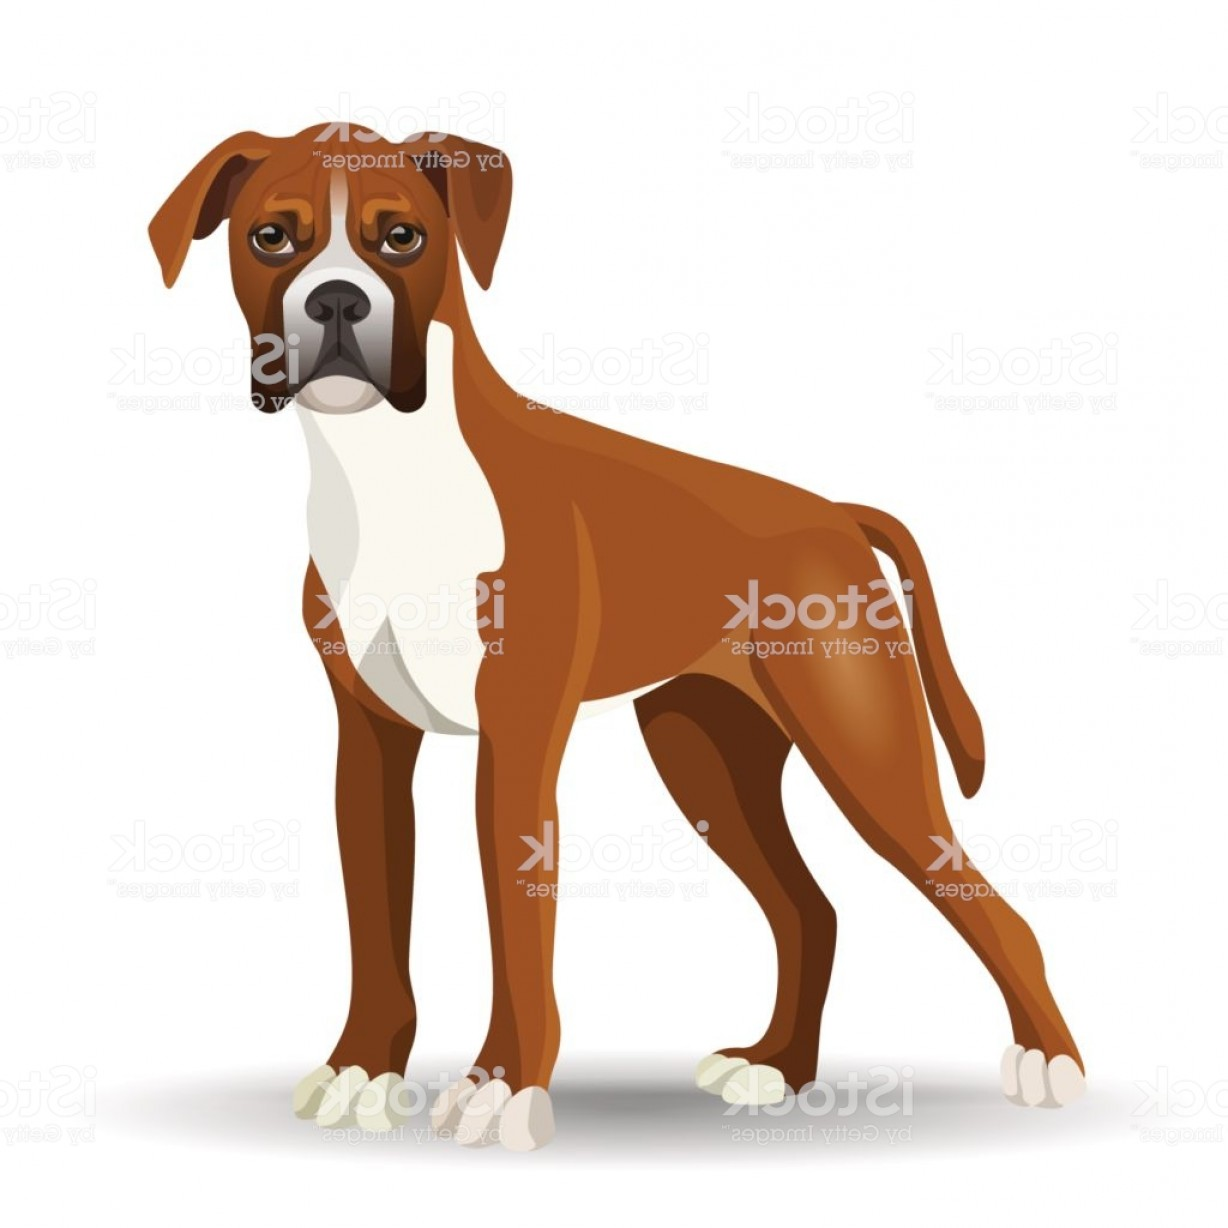 Bpxer Vector Art Happy Dog: Boxer Dog Full Length Vector Illustration Isolated On White Gm